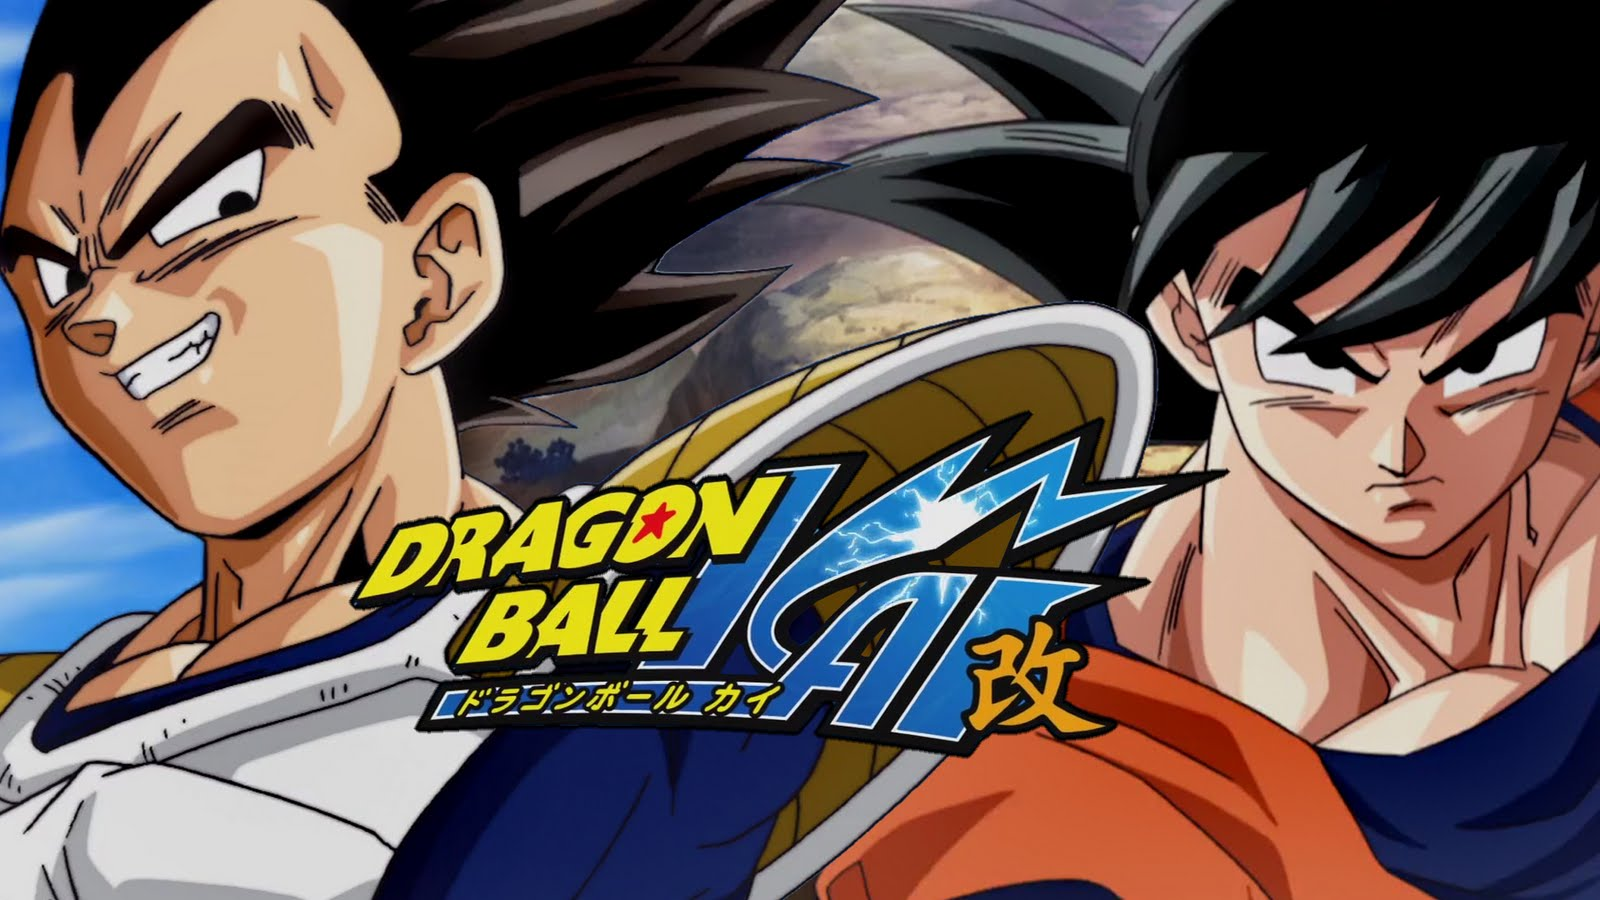 Ver Dragon Ball Kai Online